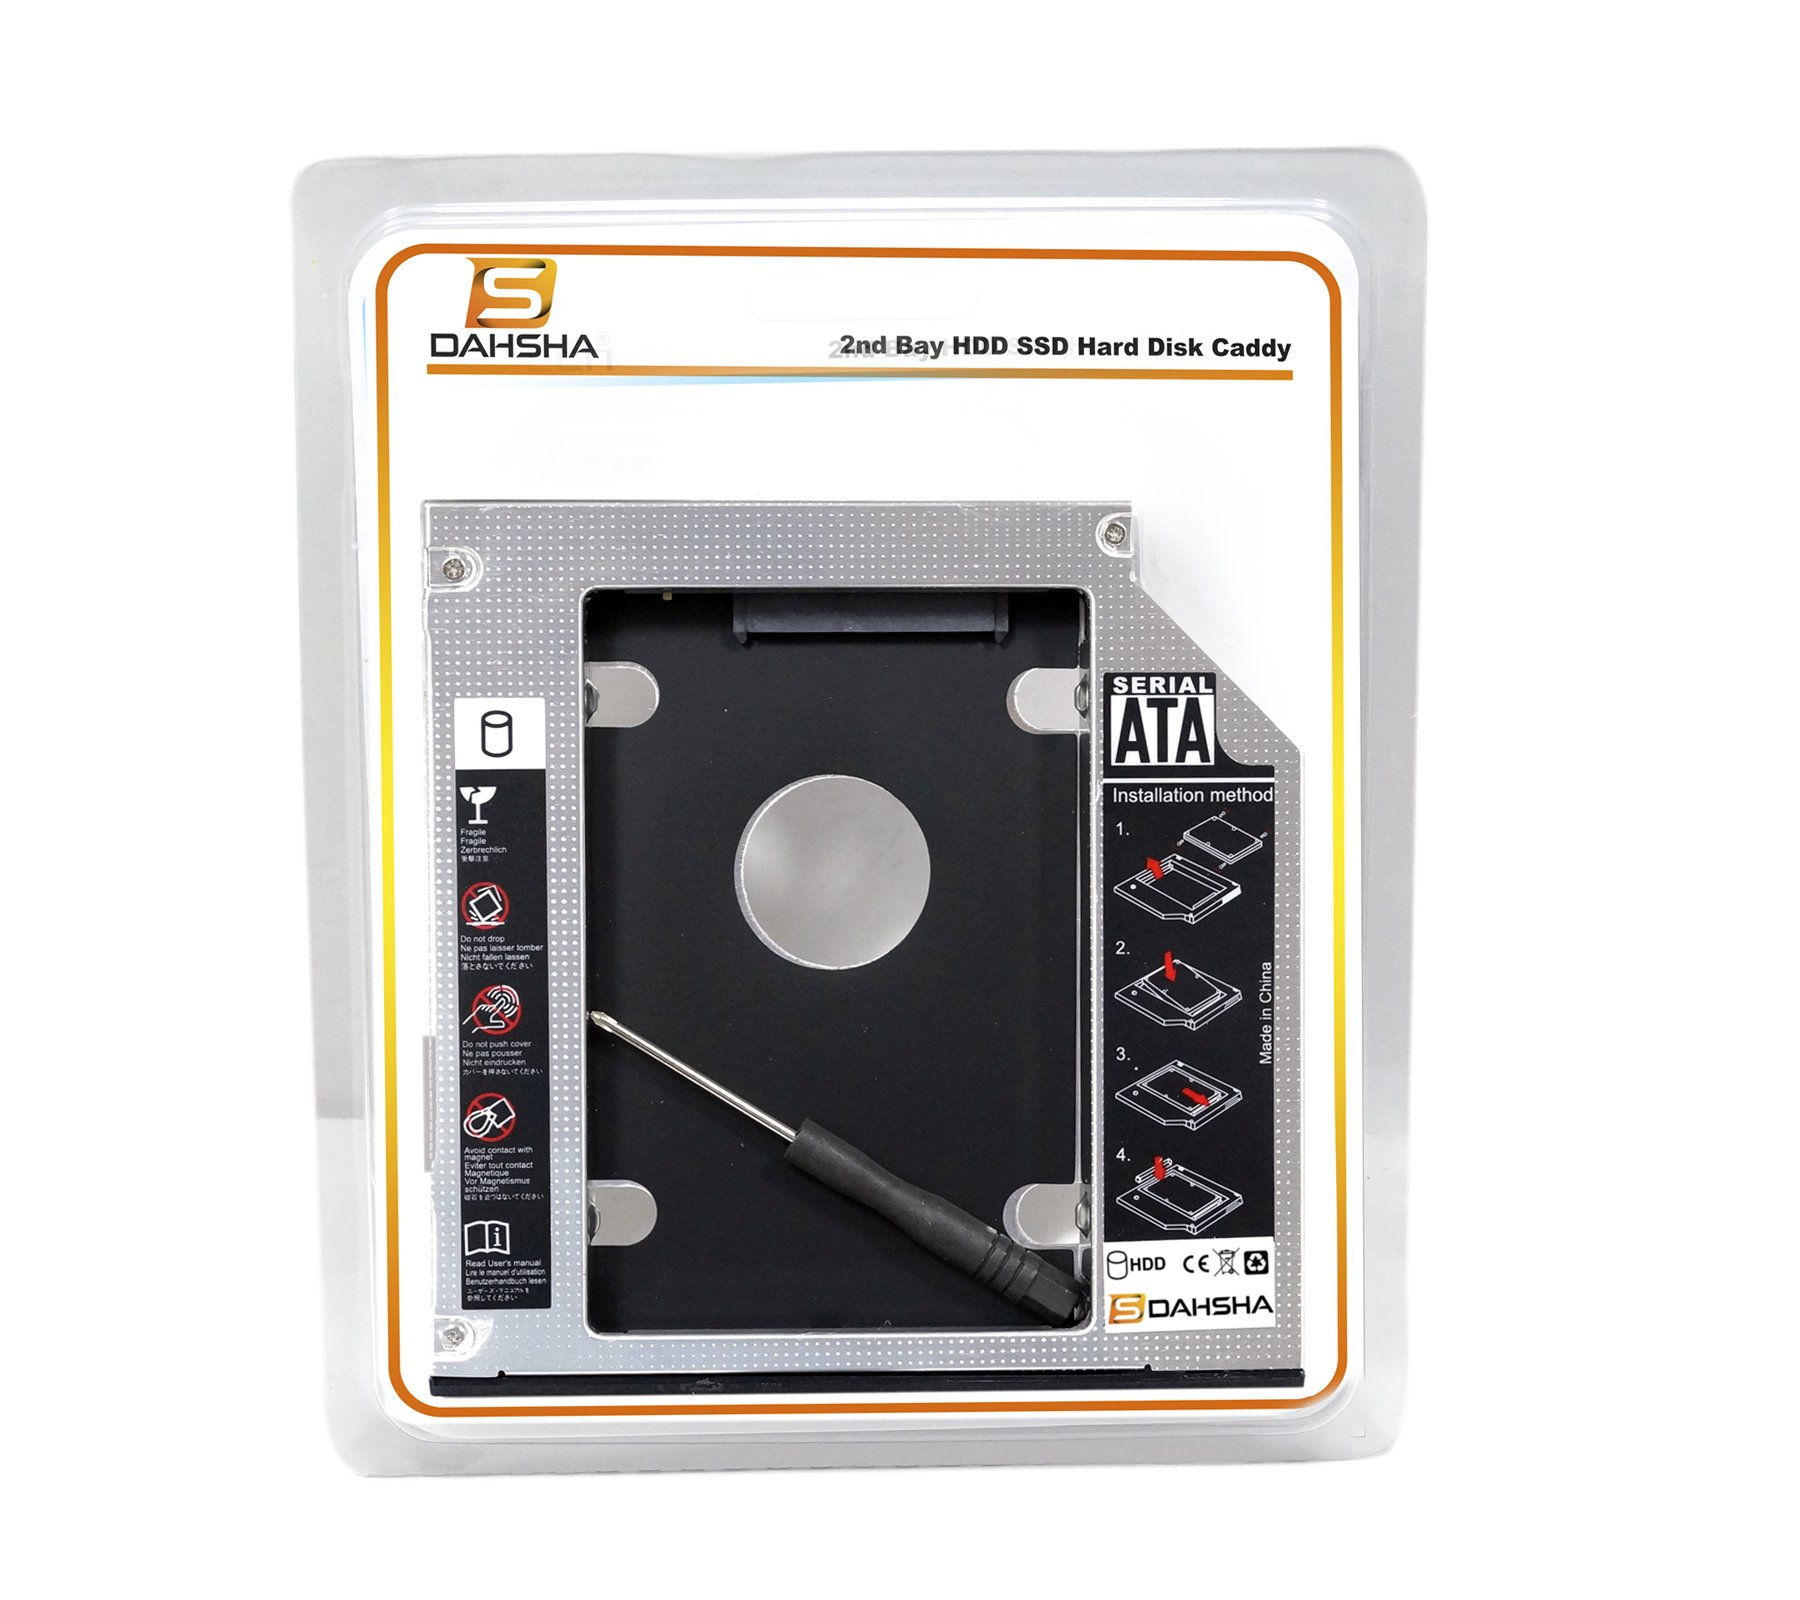 Dahsha SATA Optical Bay 2nd Hard Drive Caddy, Universal for 9.5mm CD/DVD Drive Slot (for SSD and HDD) product image